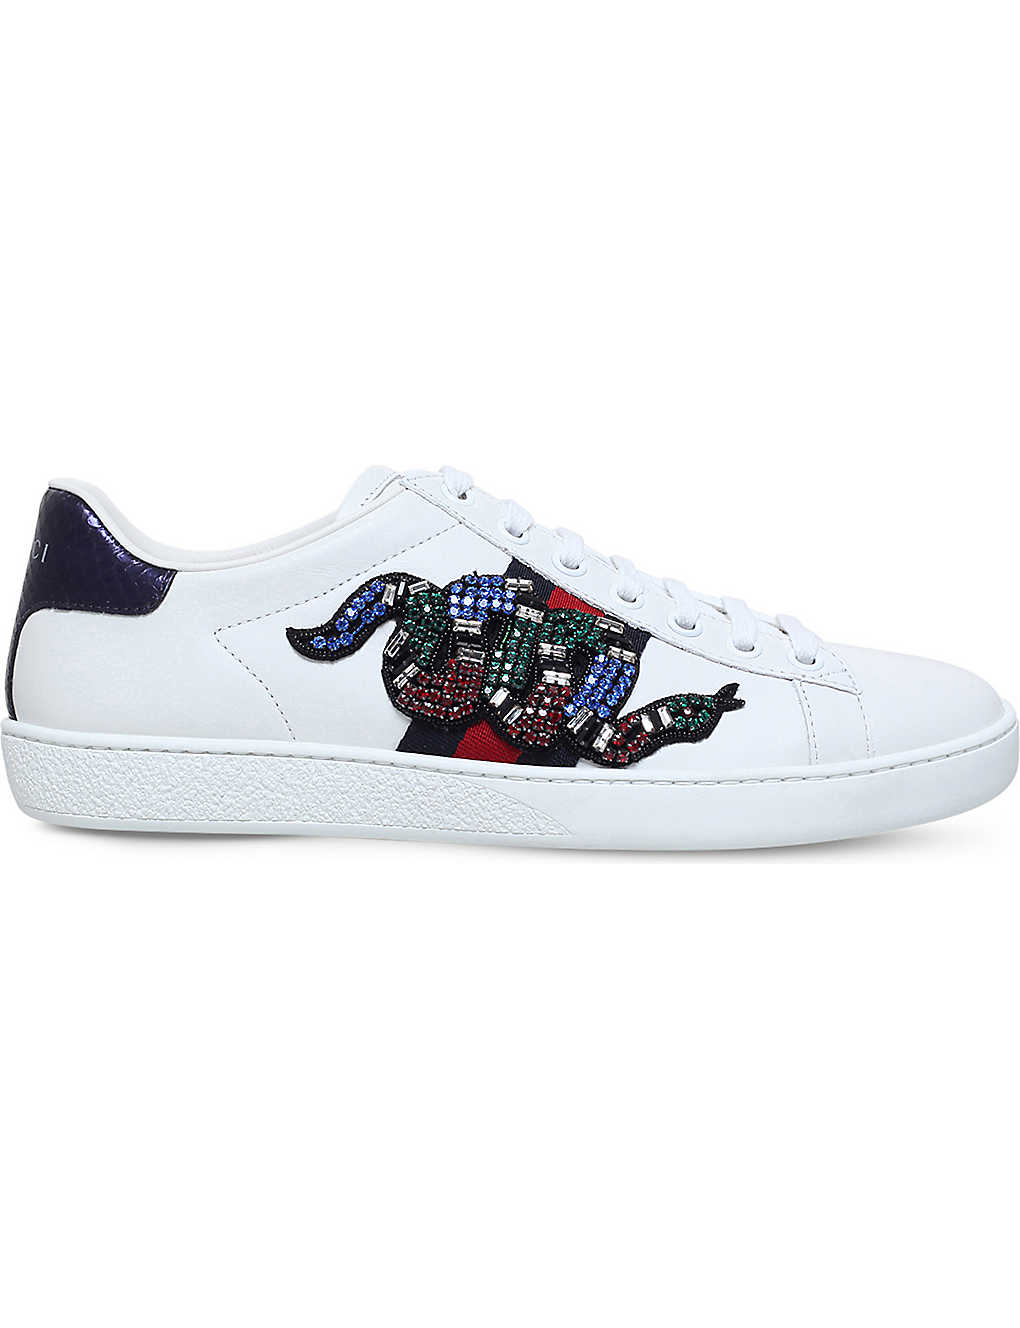 b34ddc83f72 Ace snake-embroidered leather trainers - Whiteoth ...